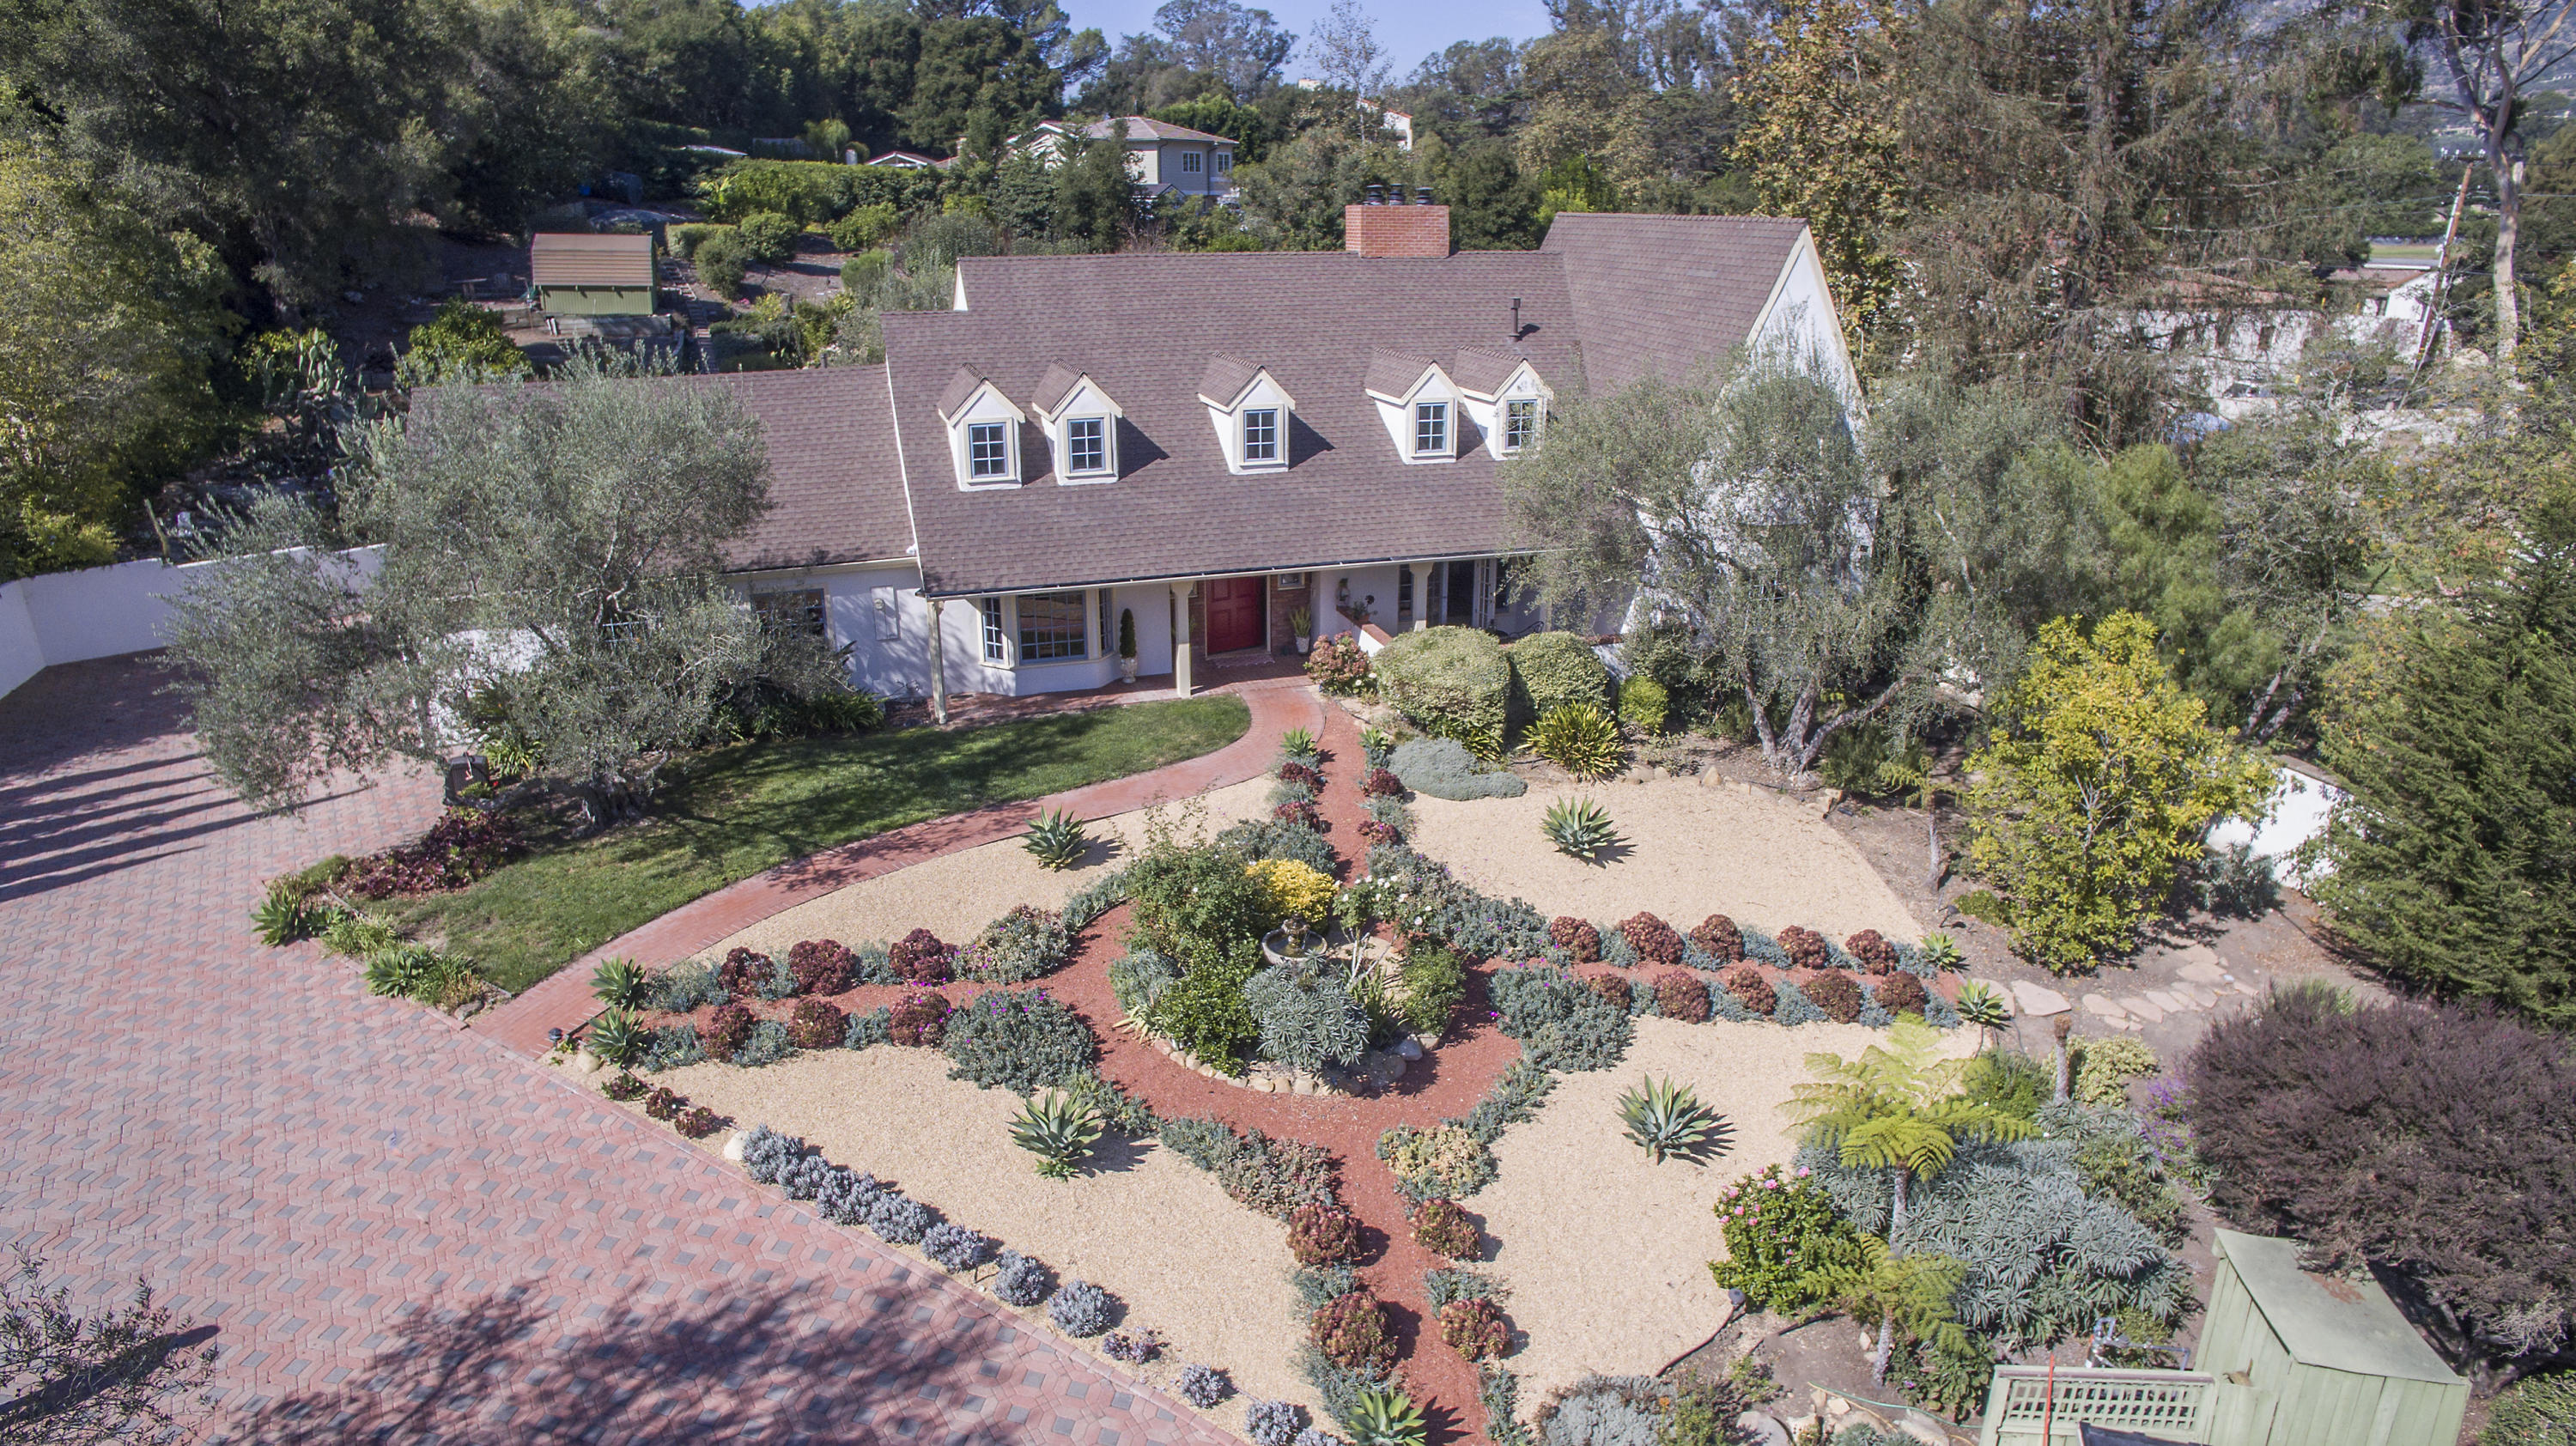 Property photo for 3165 Eucalyptus Hill Rd Santa Barbara, California 93108 - 17-1520